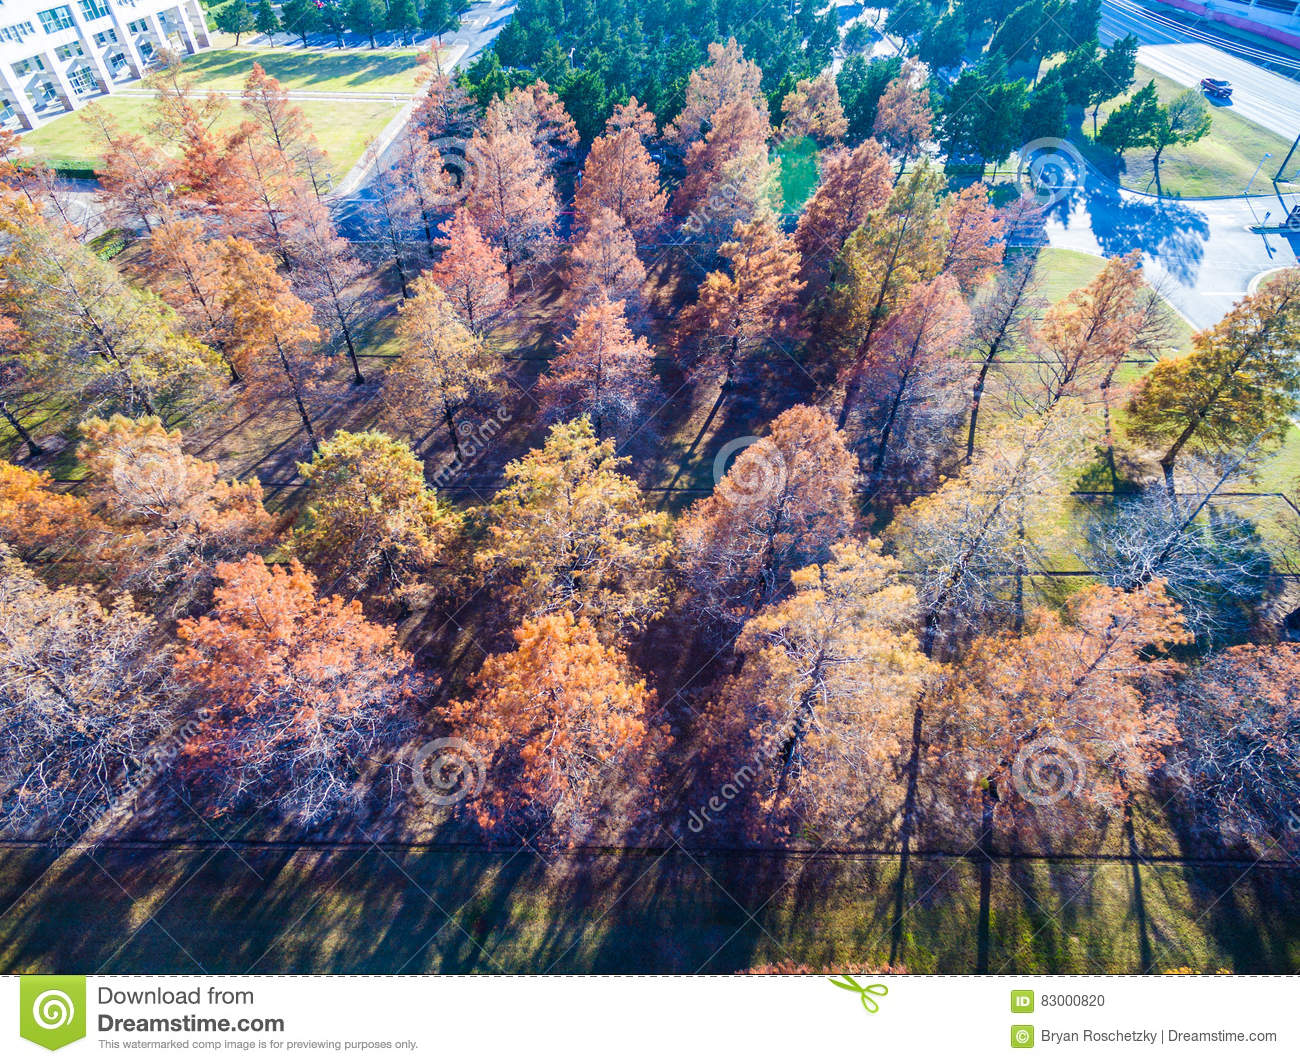 Download Sunset Long Shadows Aerial Over Winter Trees Brown And Dropping Their Leaves Rows And Rows Stock Photo - Image of rows, forest: 83000820